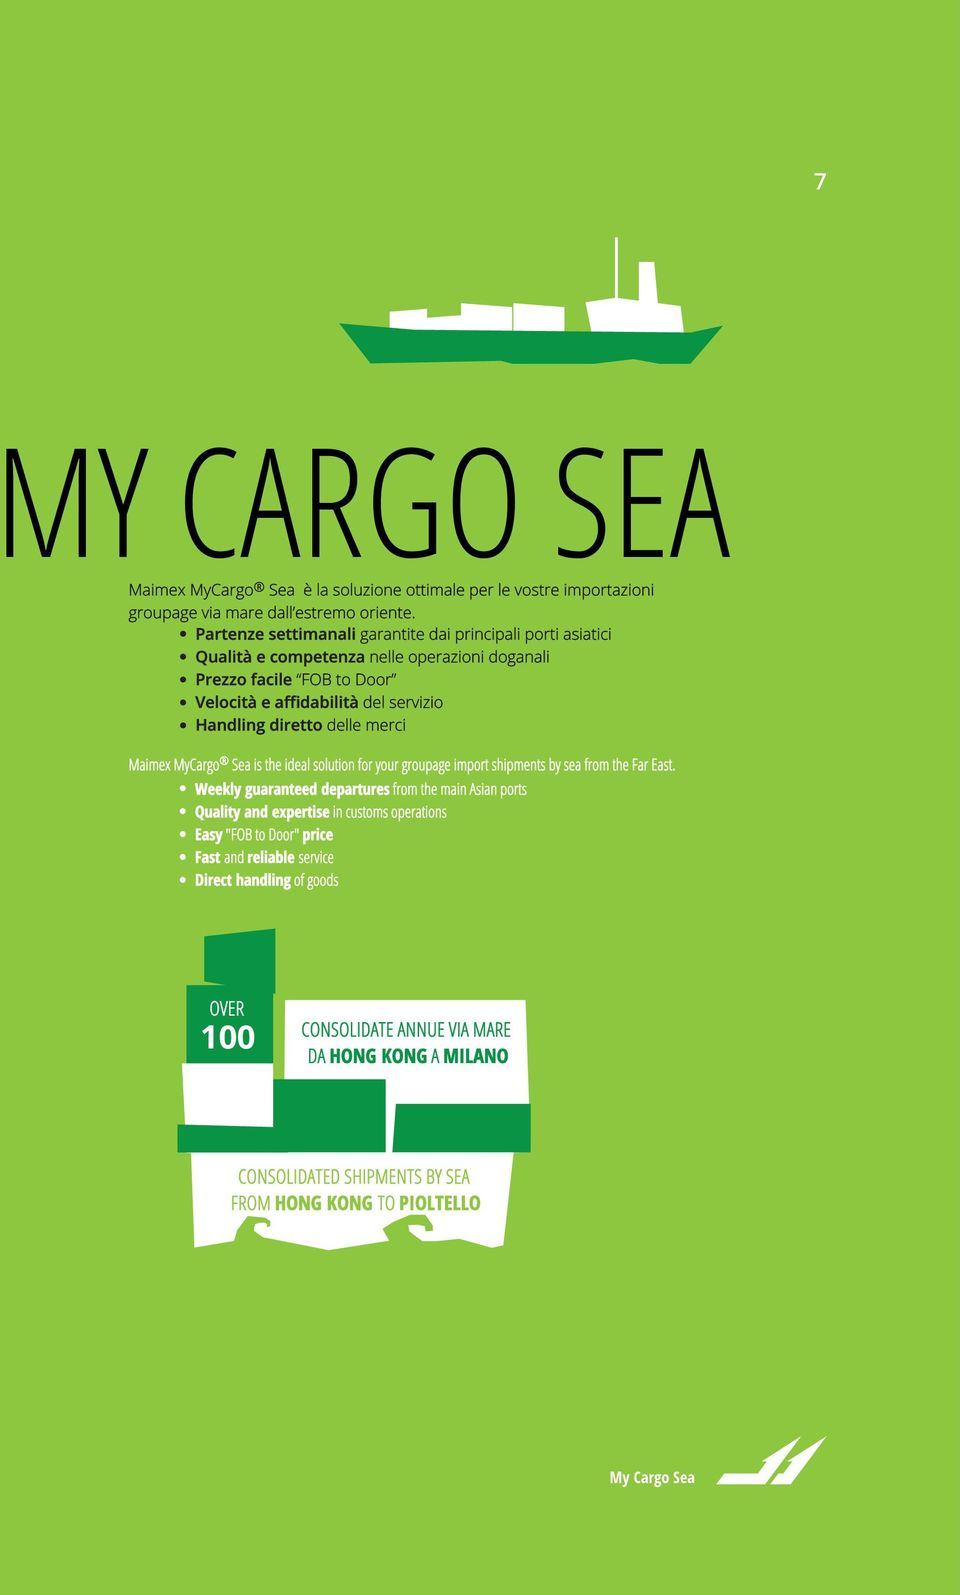 diretto delle merci Maimex MyCargo Sea is the ideal solution for your groupage import shipments by sea from the Far East.